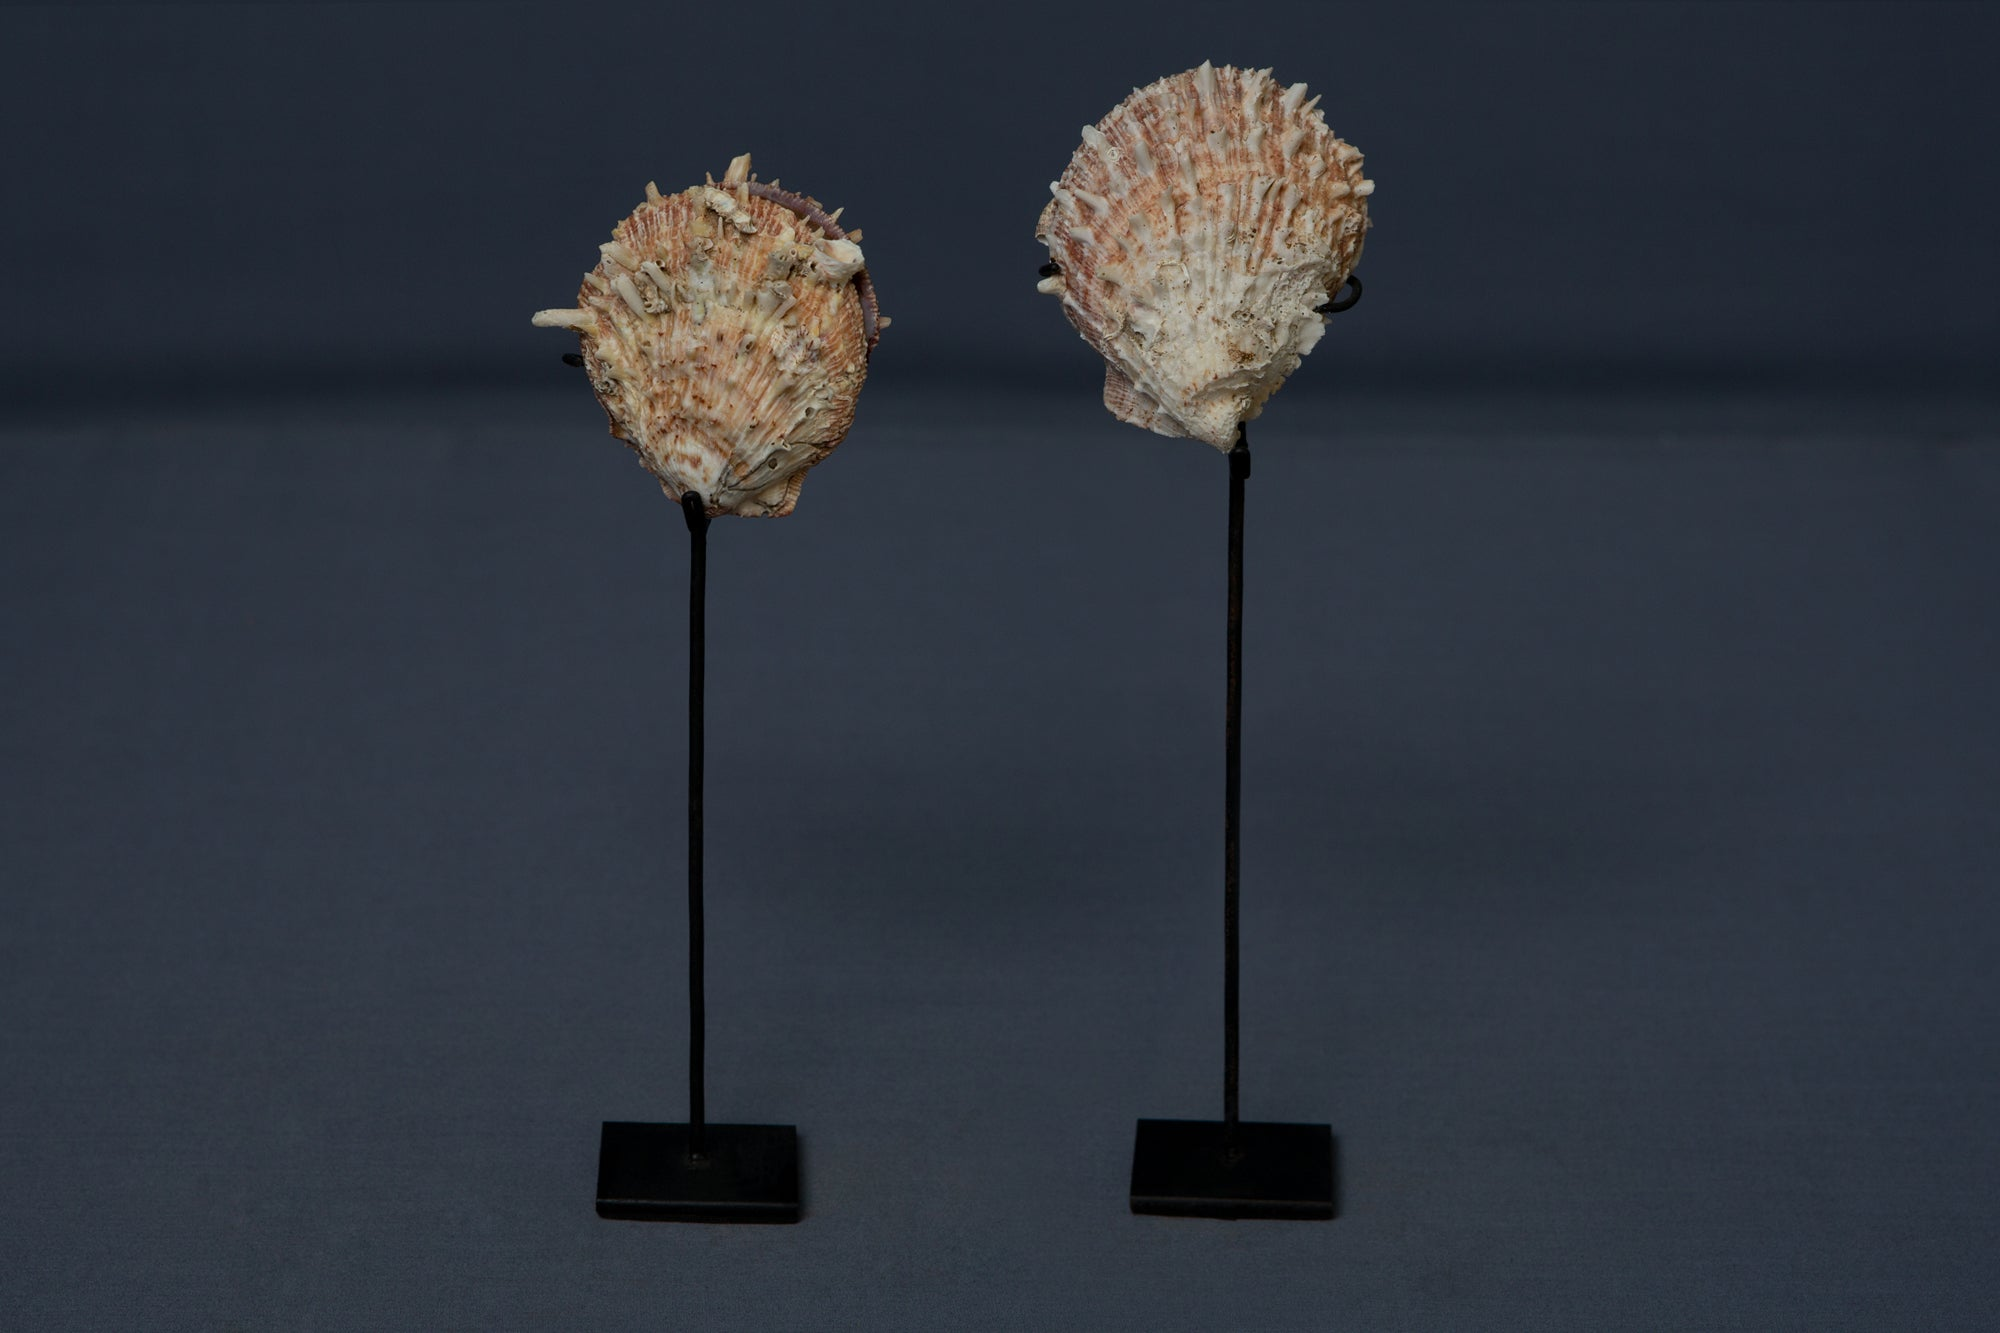 Pair of Spiny Clams mounted on stands